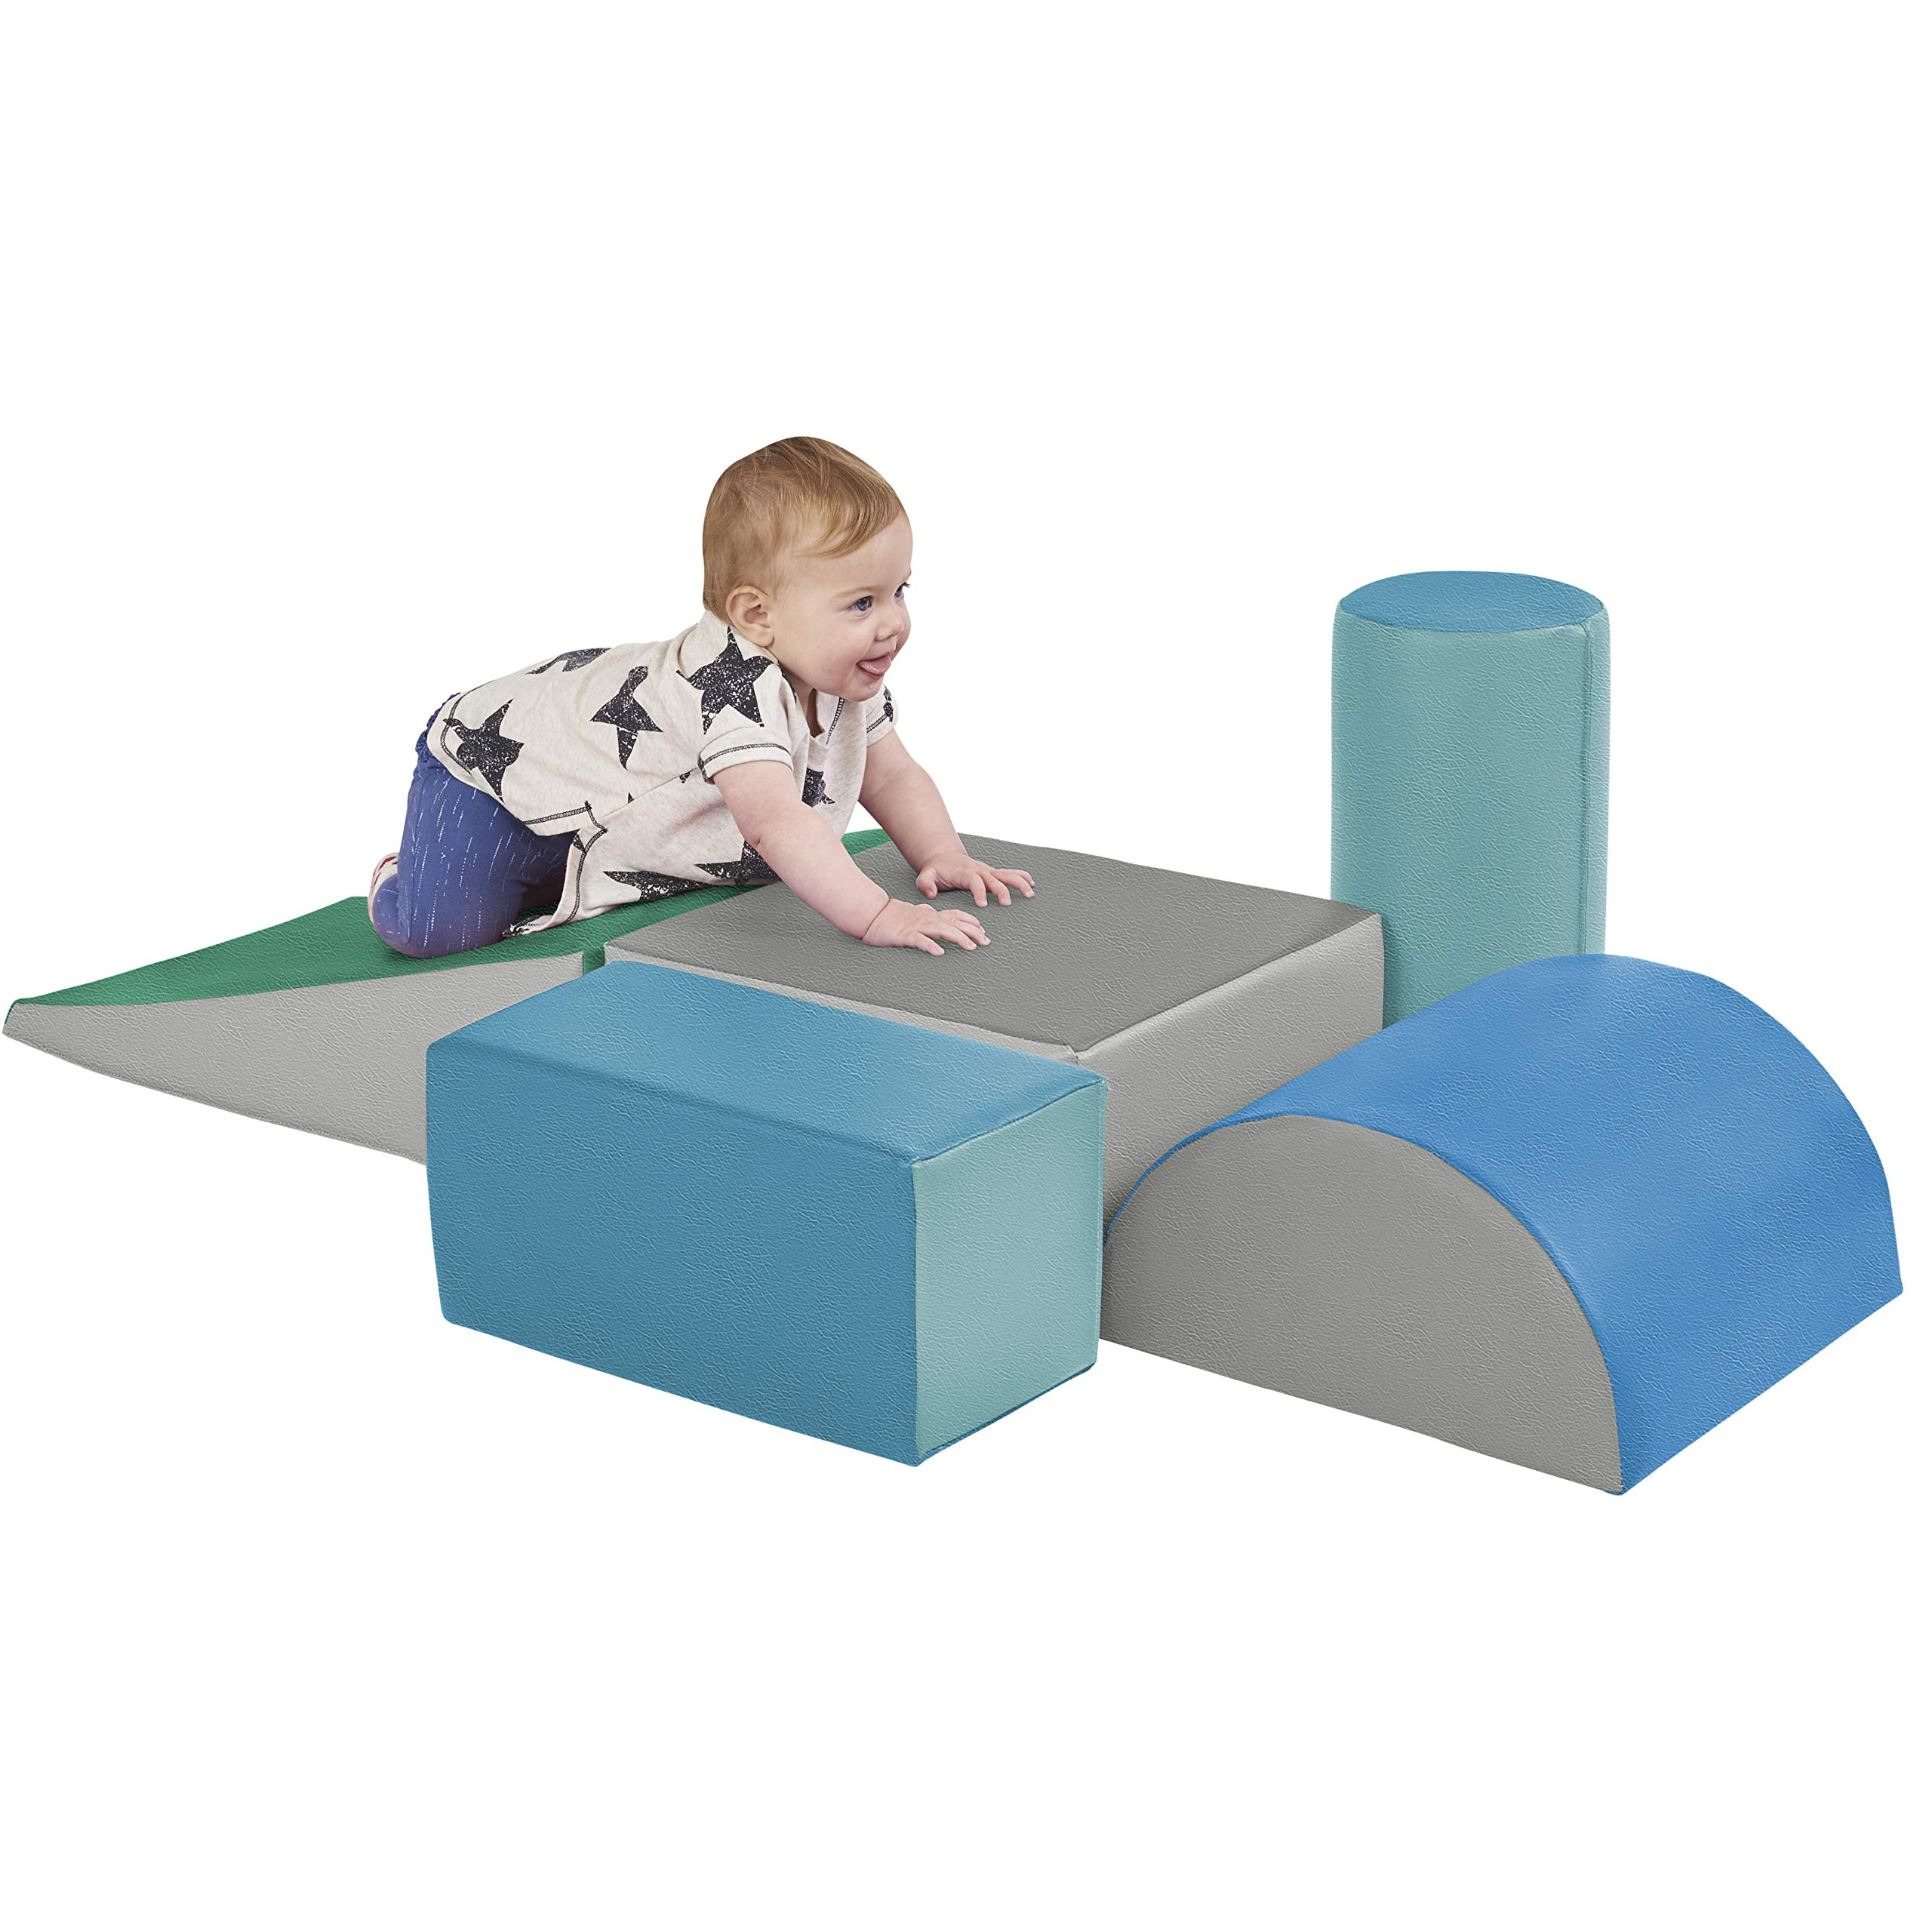 ECR4Kids SoftZone Climb and Crawl Activity Play Set, Lightweight Foam Shapes for Climbing, Crawling and Sliding, Safe Foam Playset for Toddlers and Preschoolers, 5-Piece Set, Contemporary